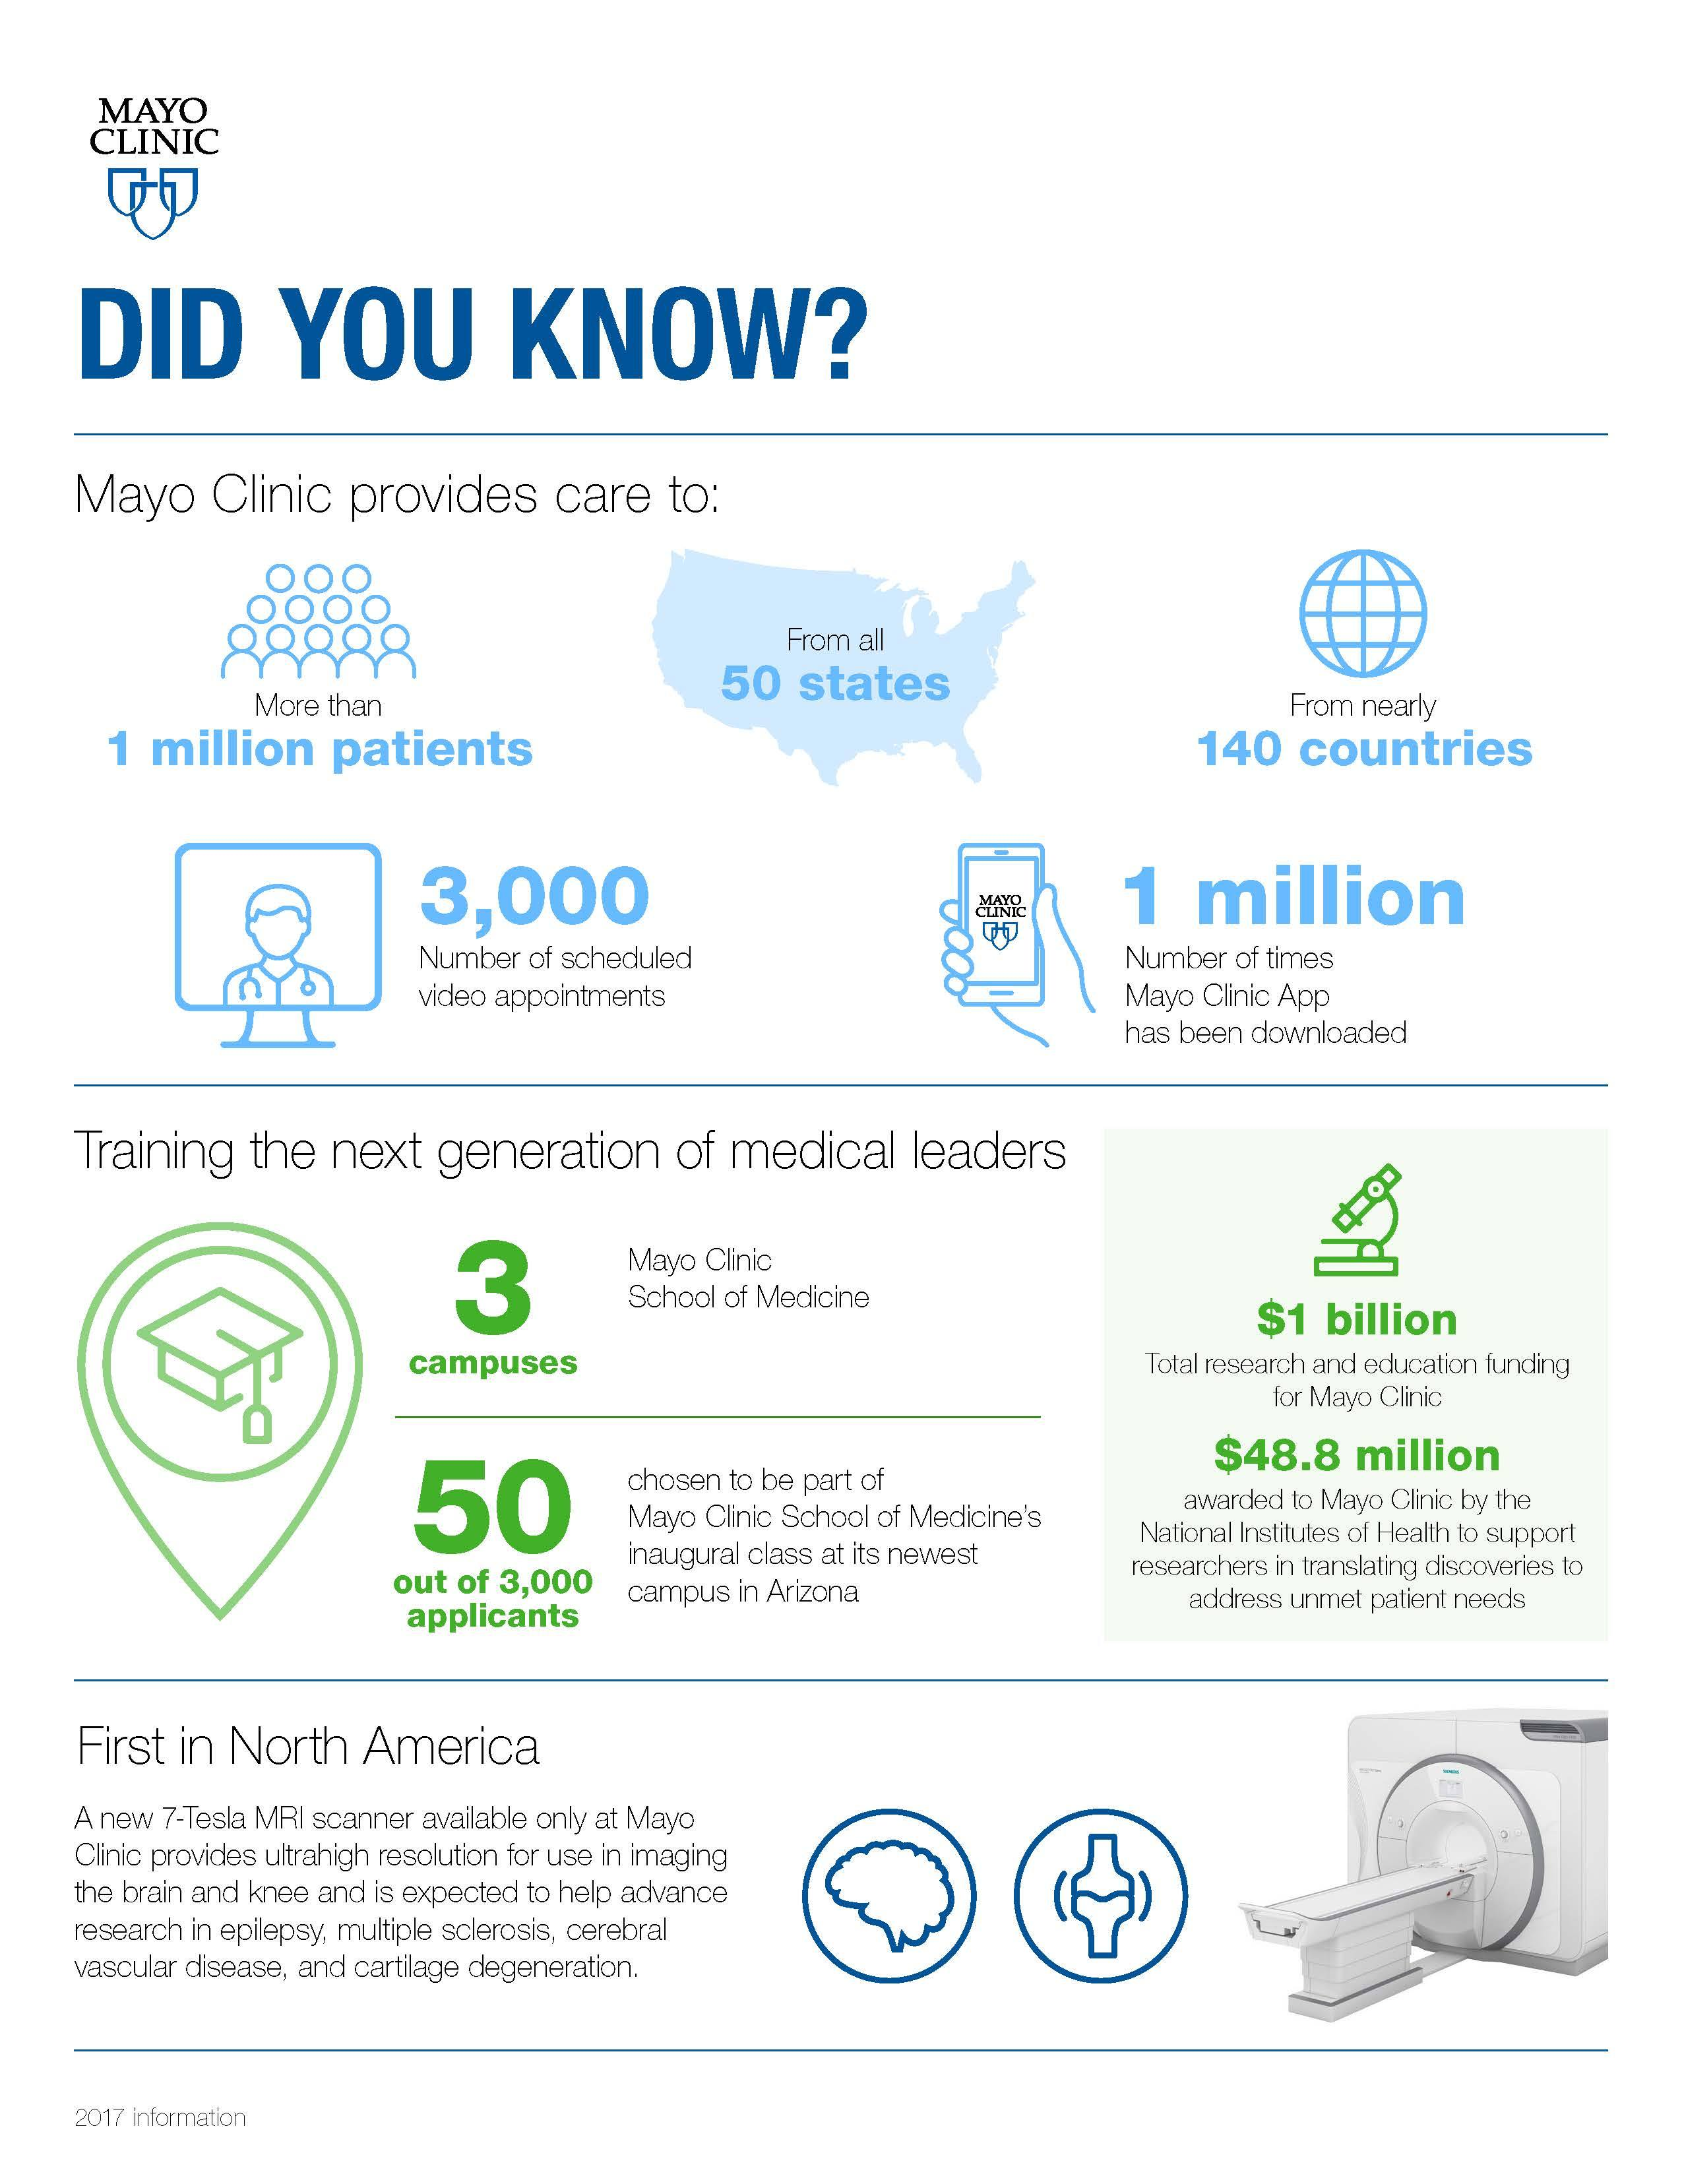 Mayo Clinic Did You Know Infographic